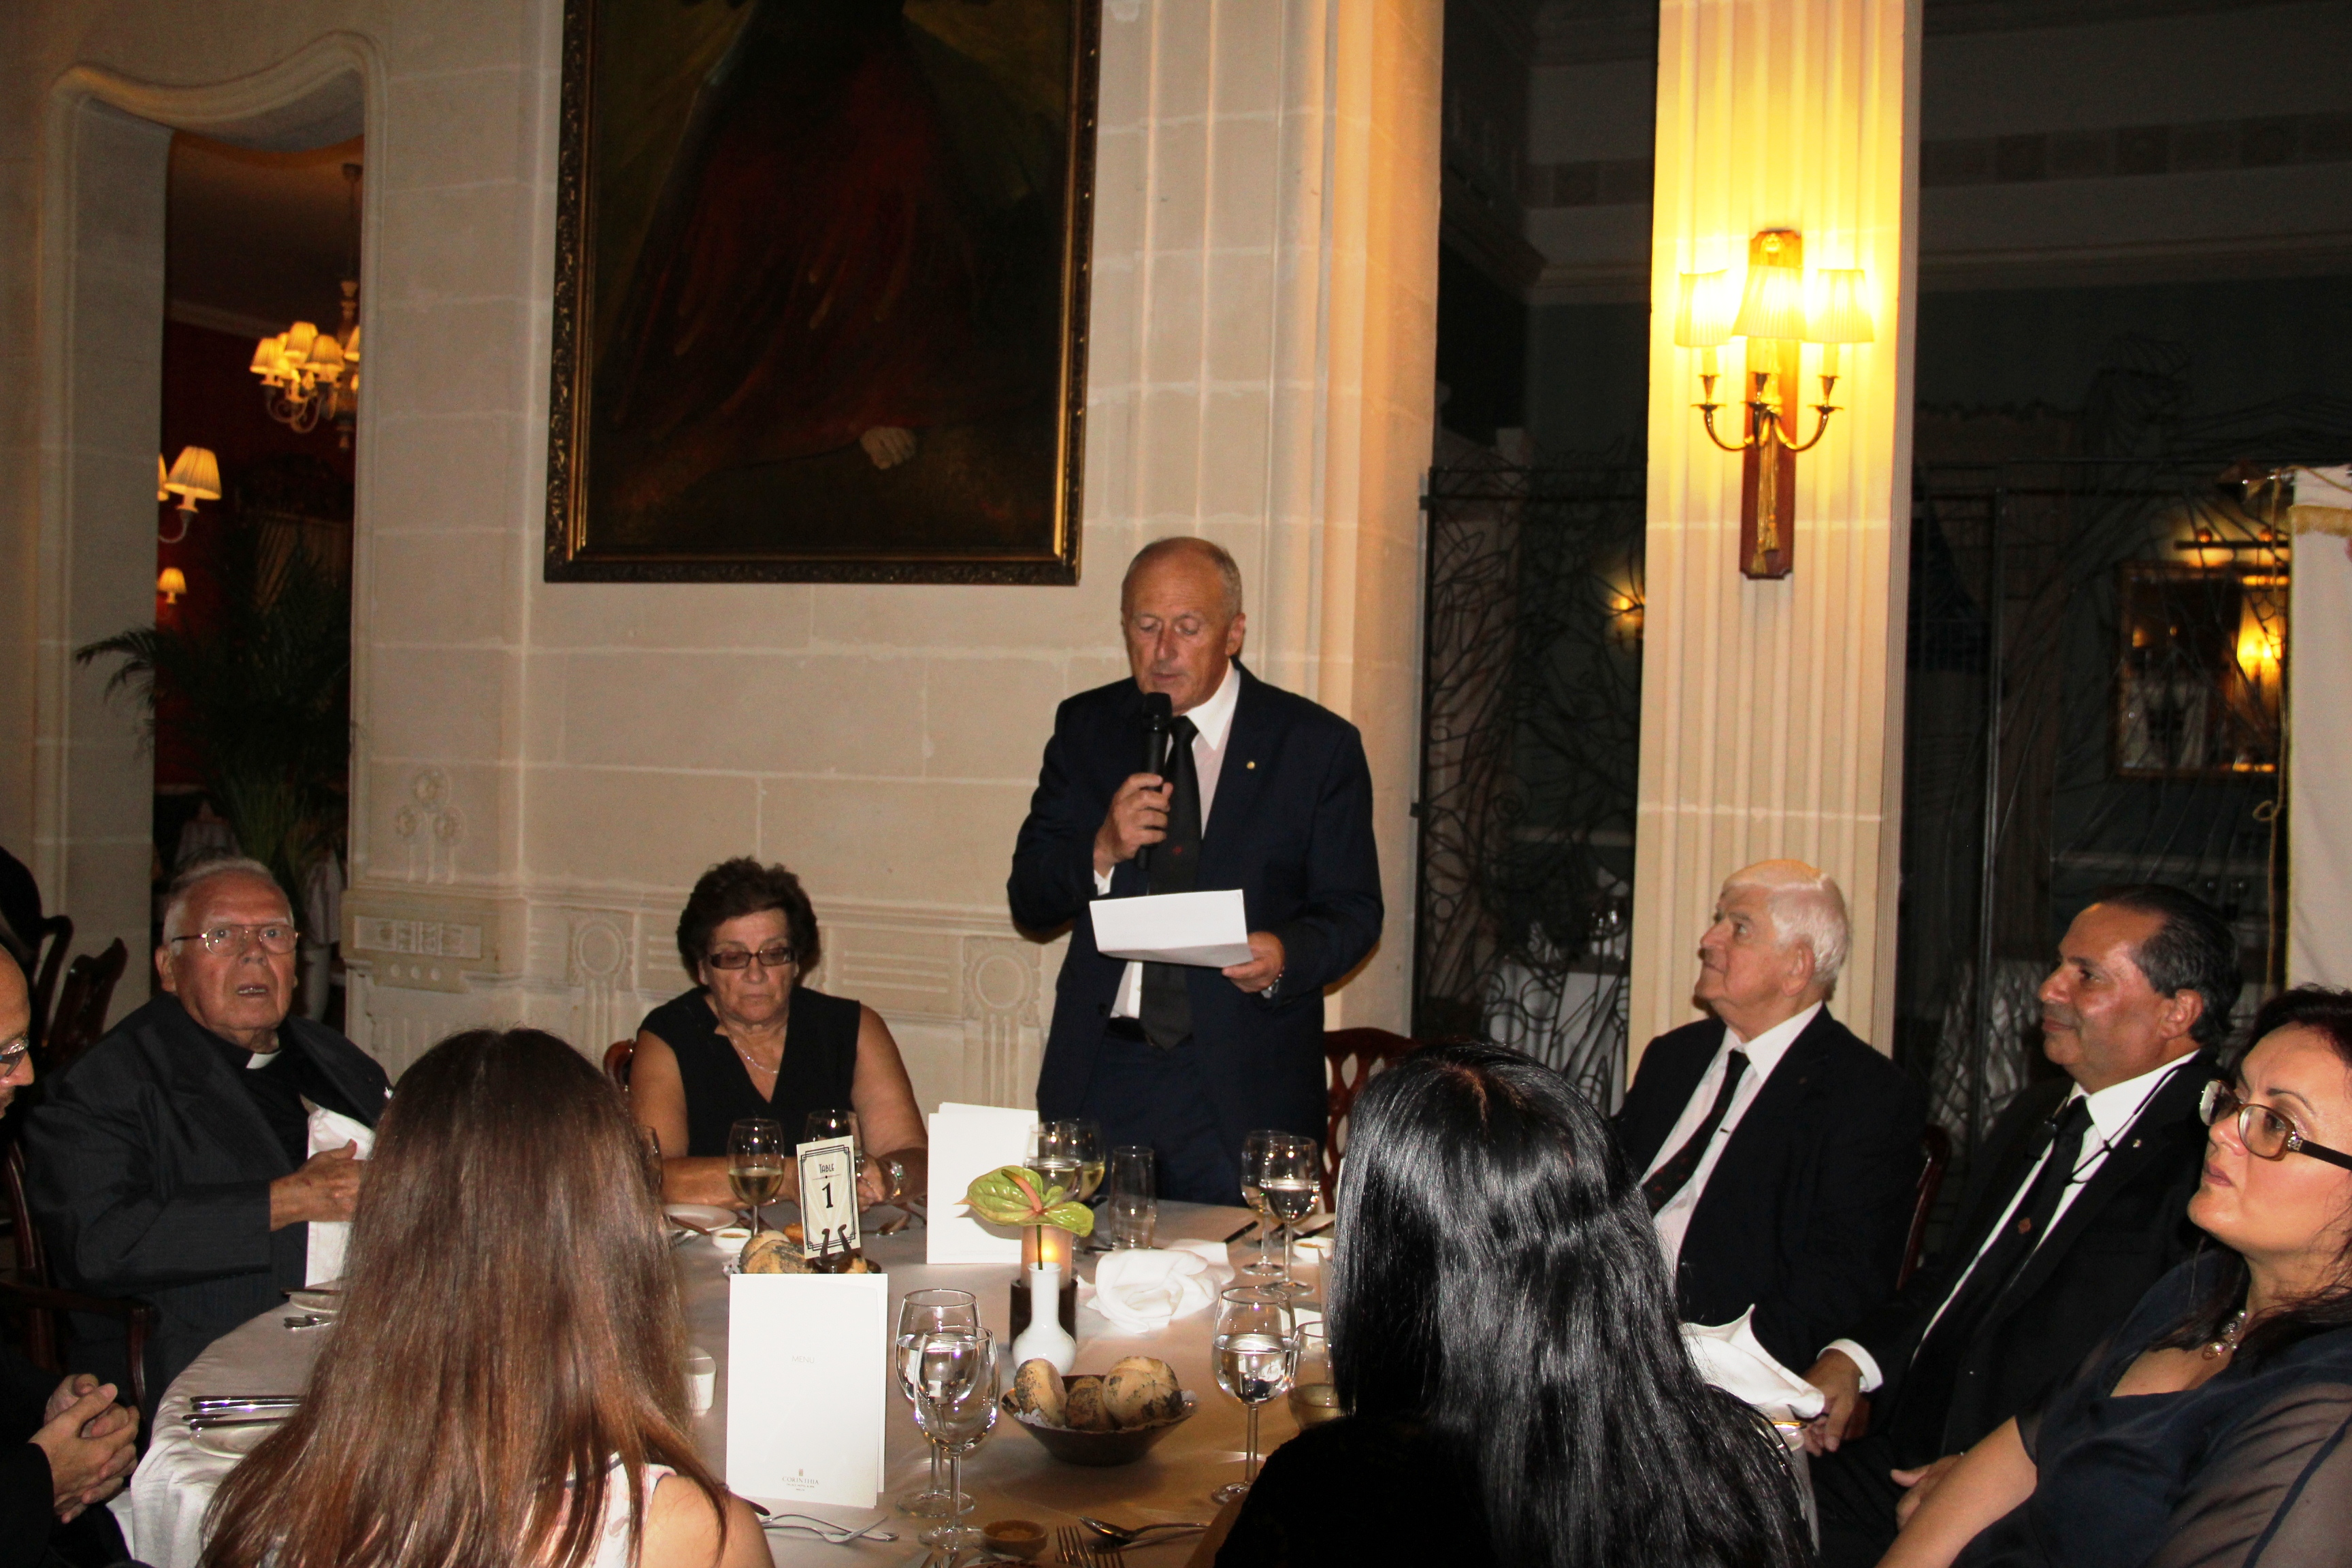 H.E. the Lieutenant delivering a memorable speech before dinner